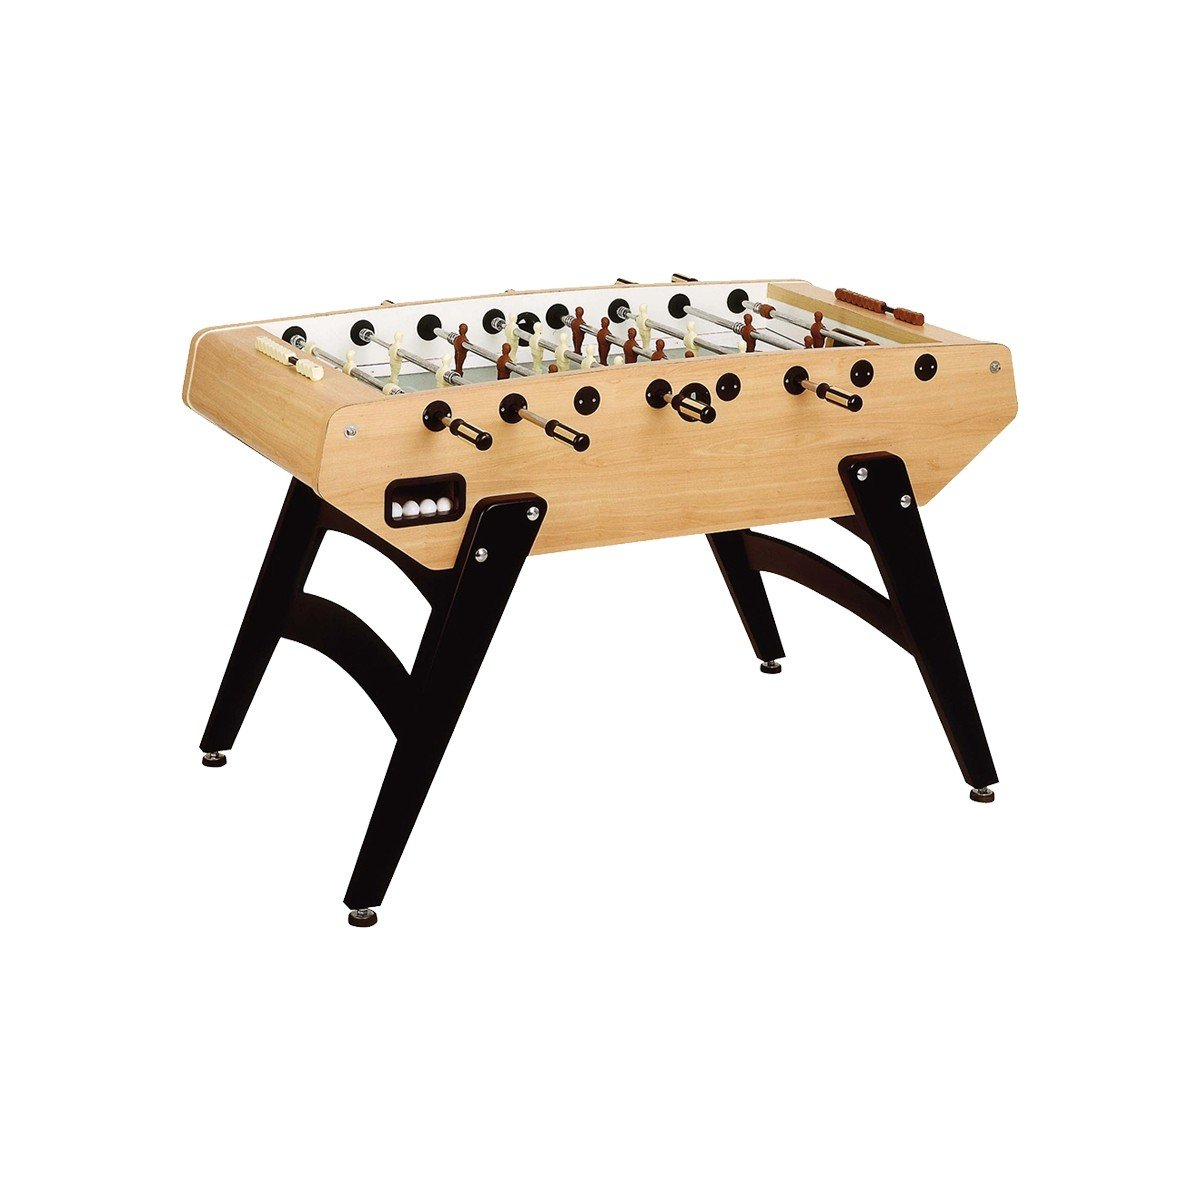 Garlando G-5000 Wood Grained Foosball Table - Gaming Blaze